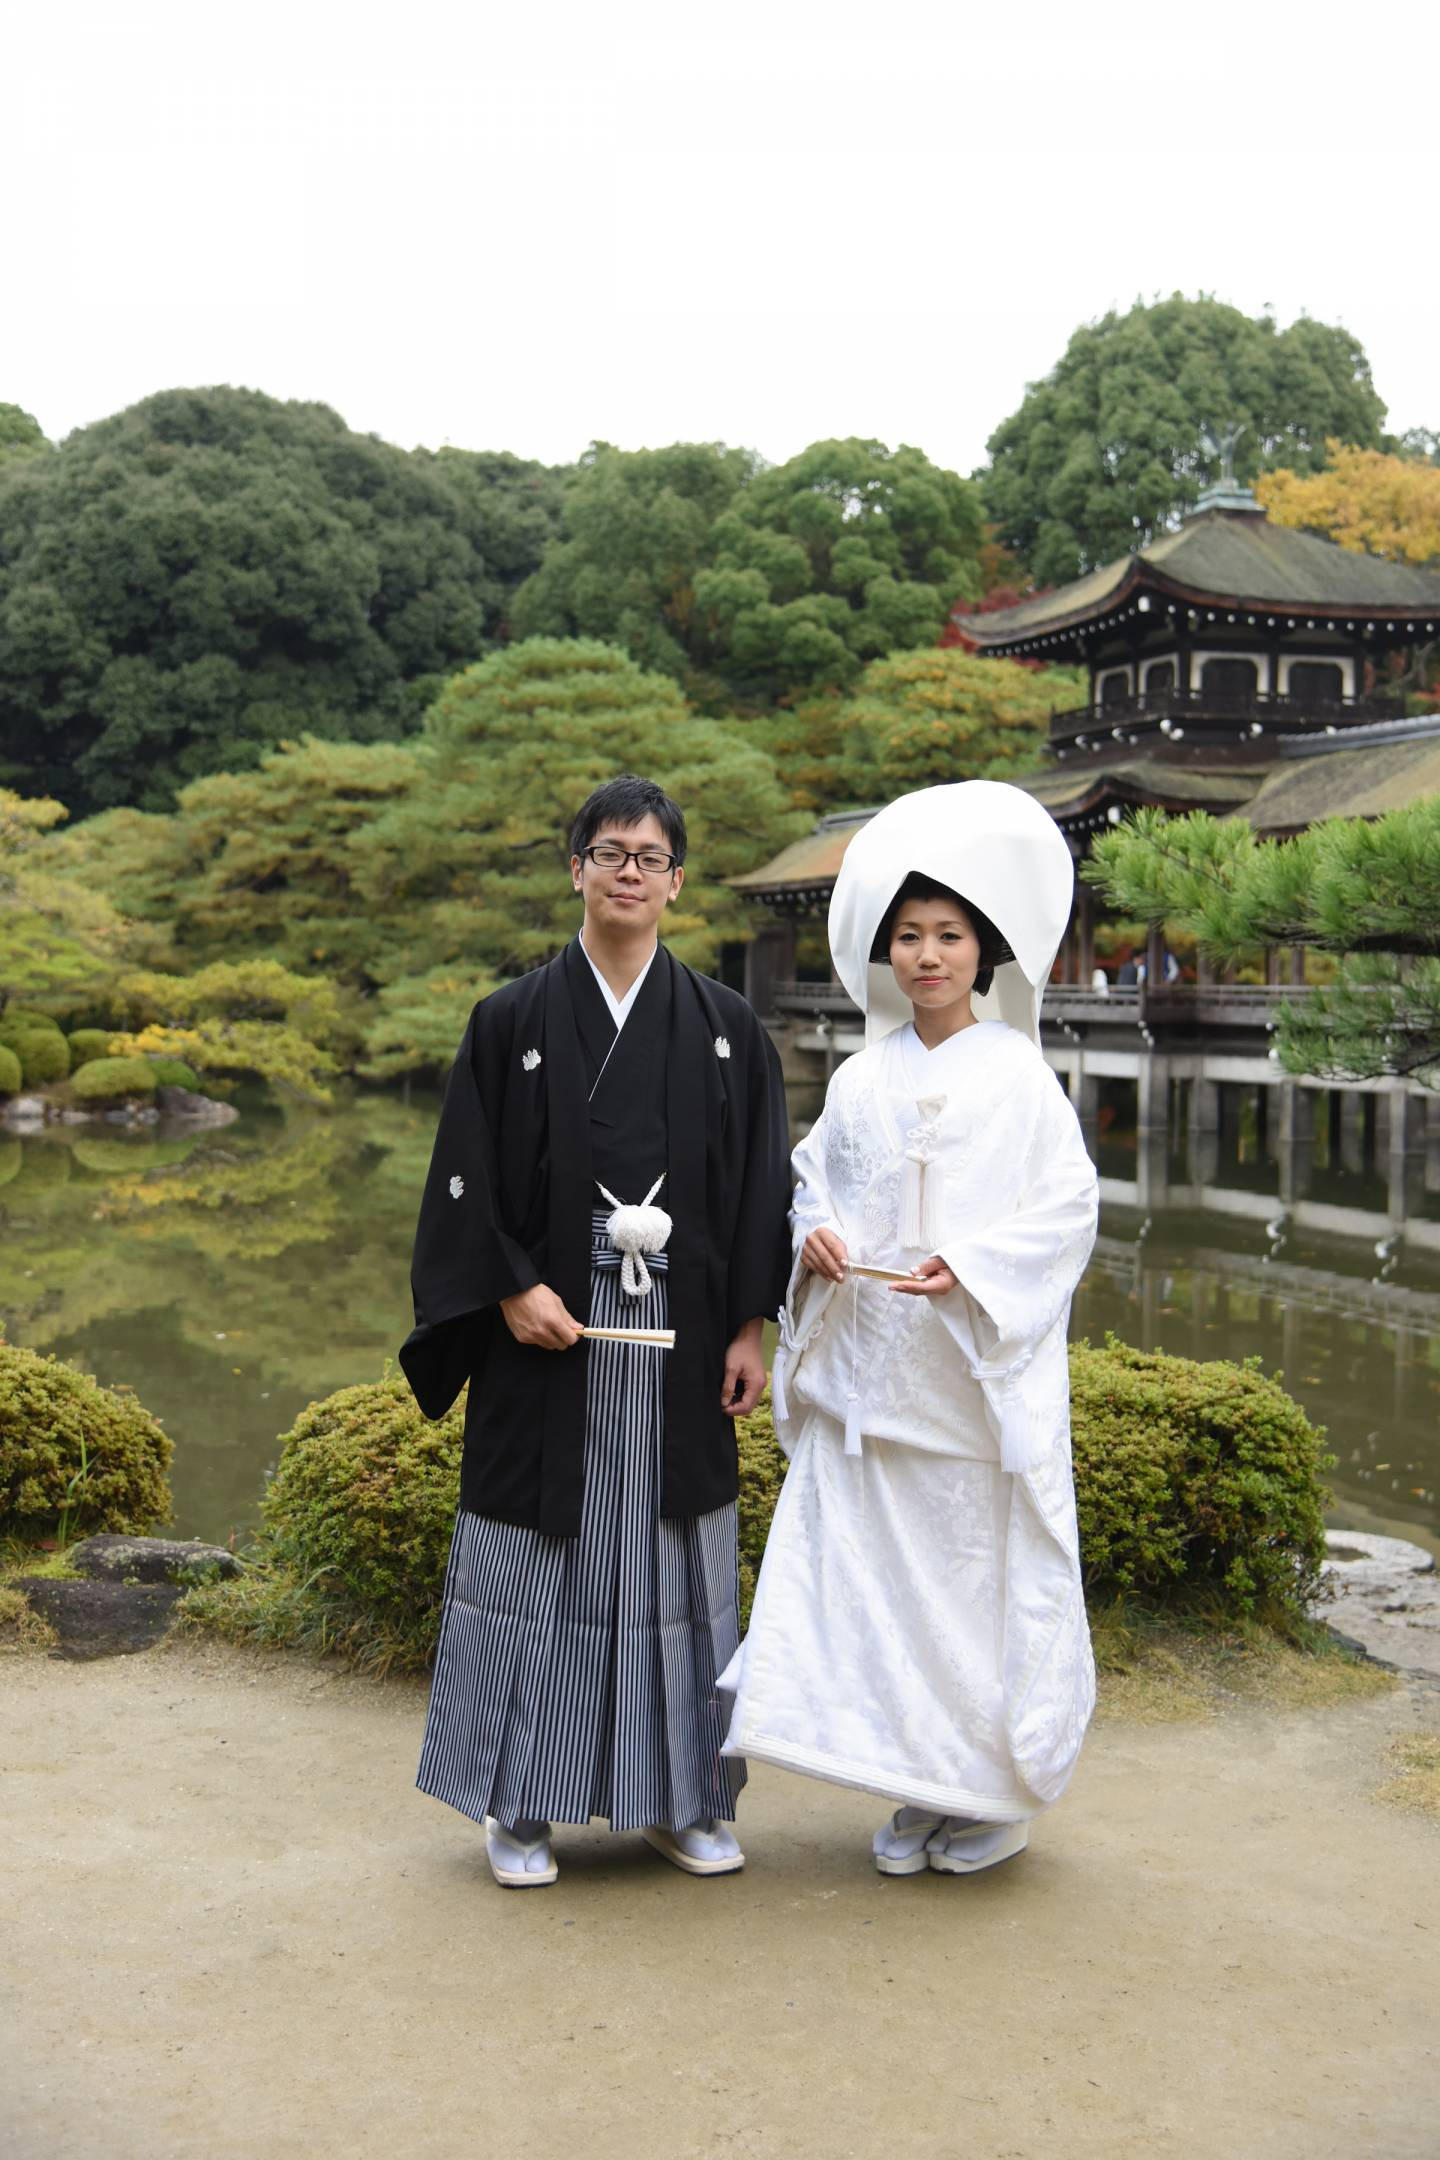 Heiraten In Japan: Ja-Wort Vor Den Shintō-Göttern | Japandigest